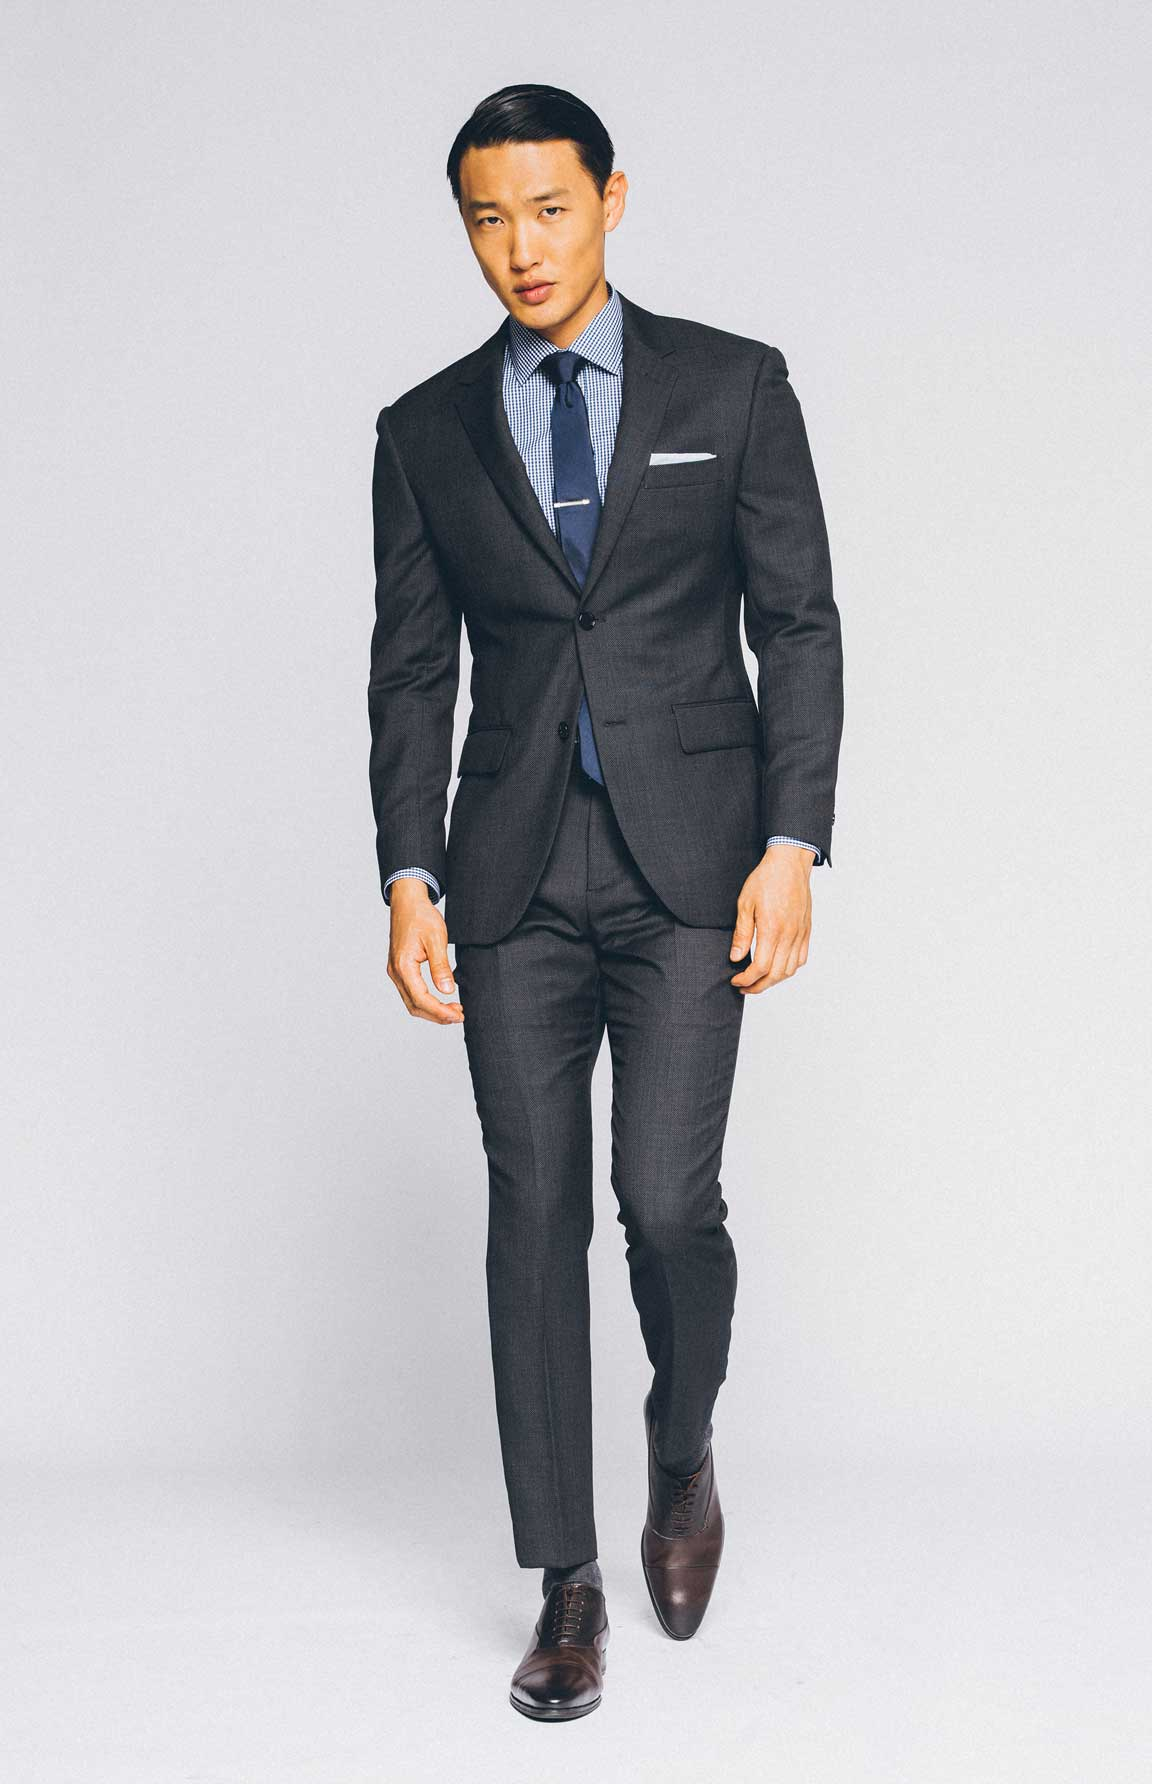 Dress to impress in our Premium Charcoal Suit.